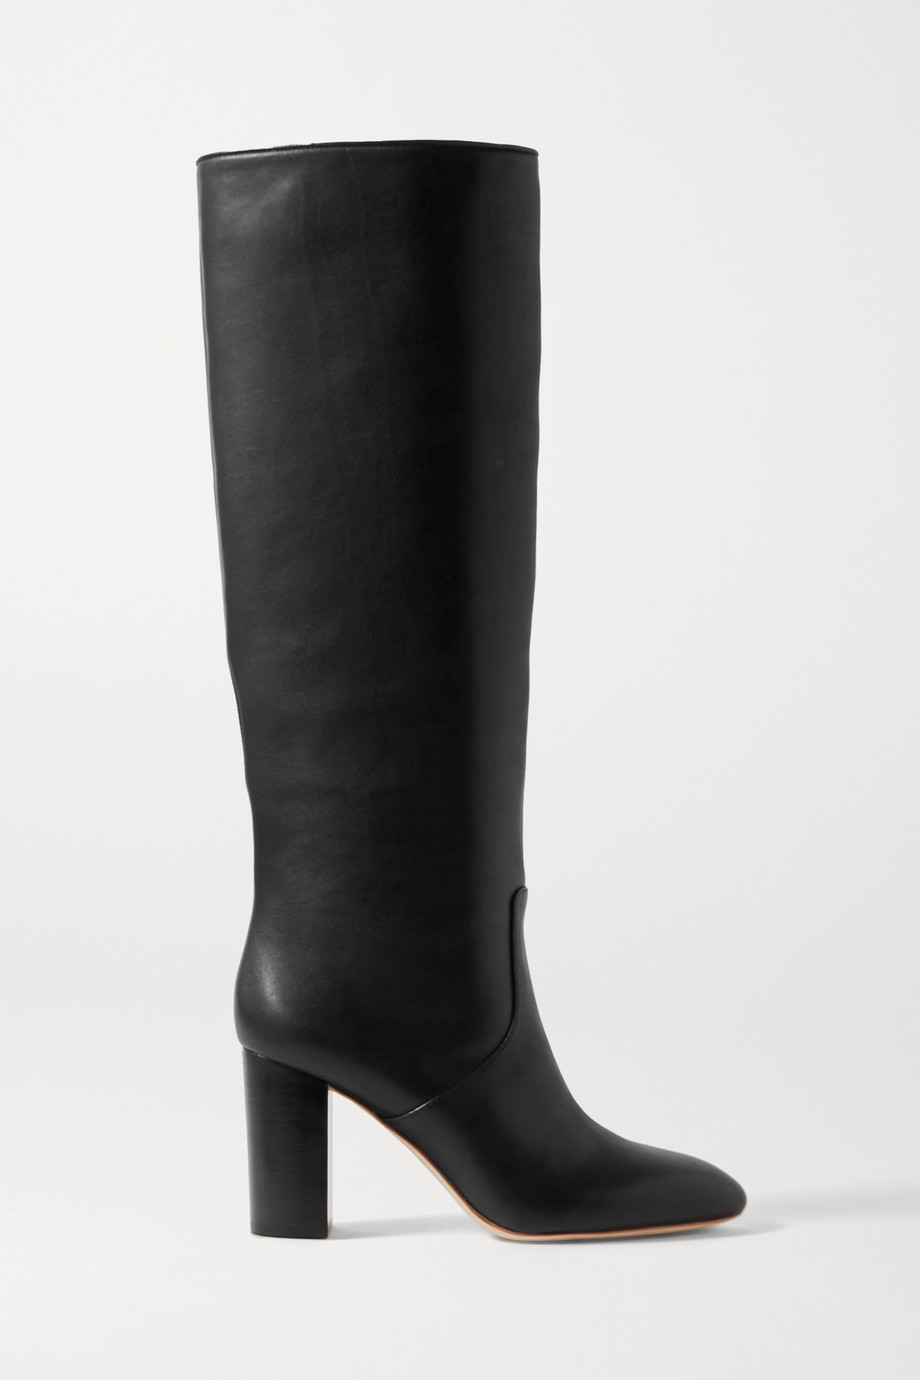 Loeffler Randall Goldy leather knee boots